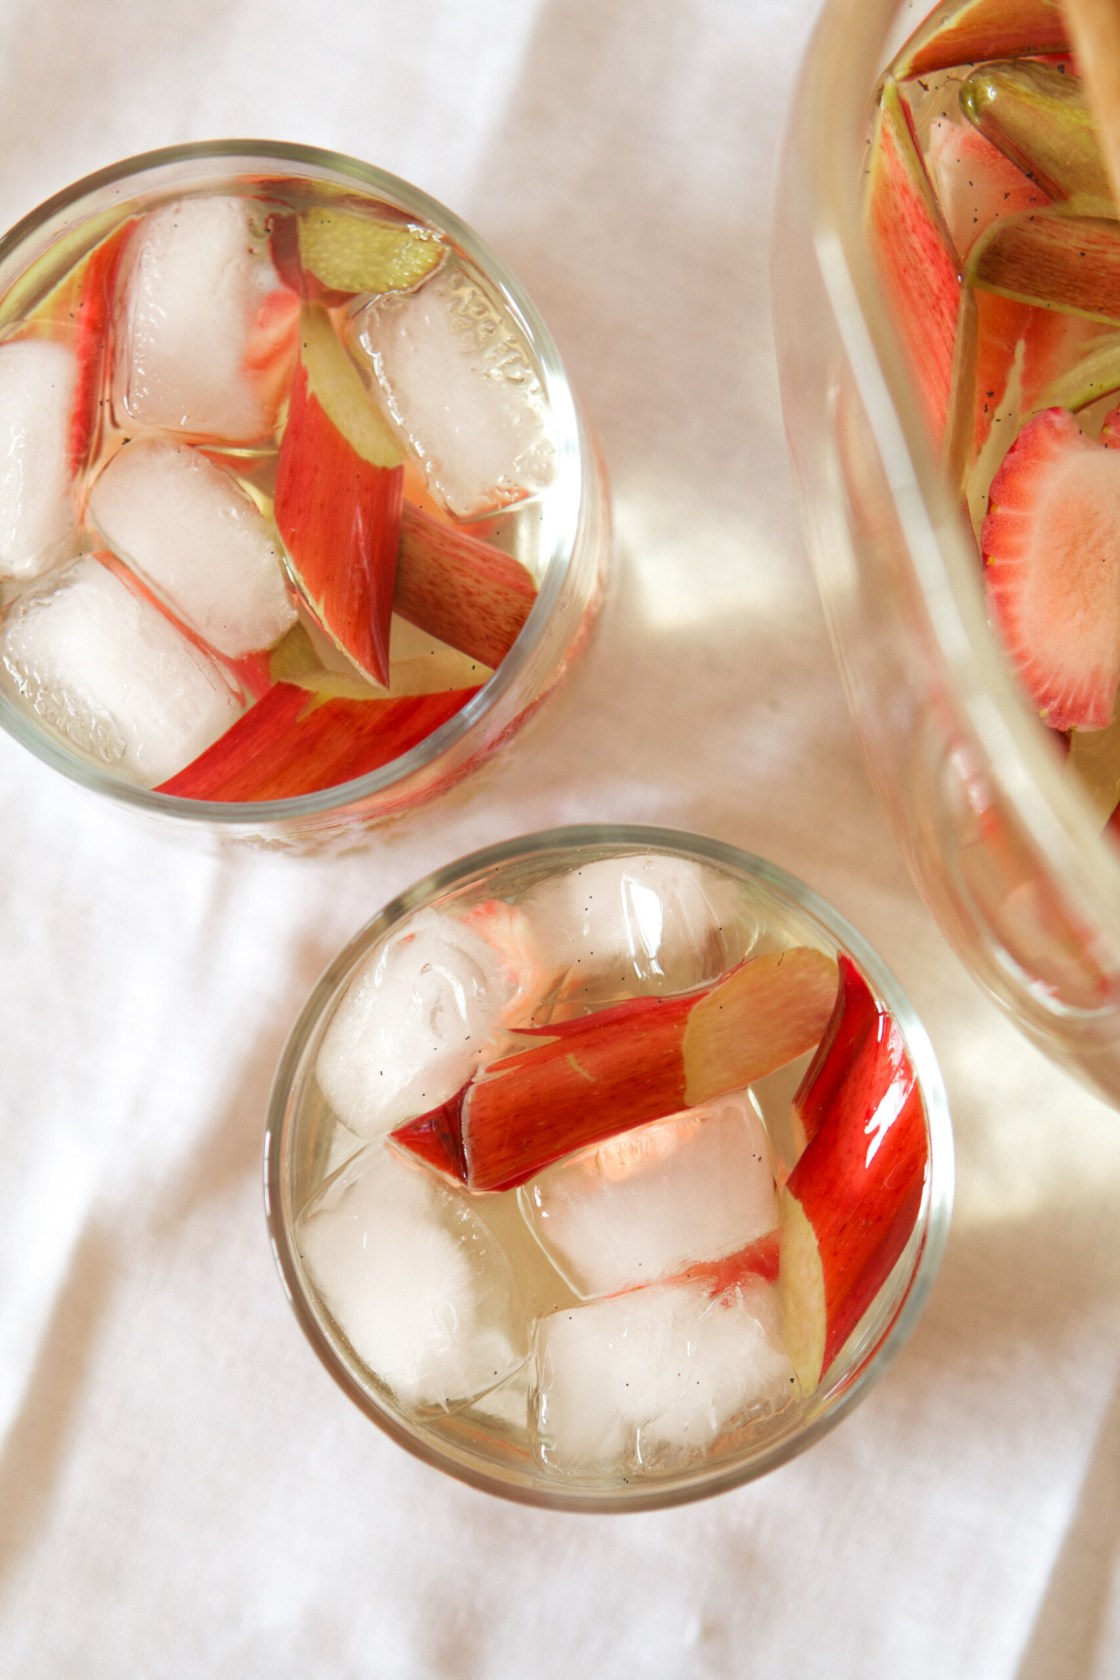 Strawberry & Rhubarb Sangria | Zestful Kitchen